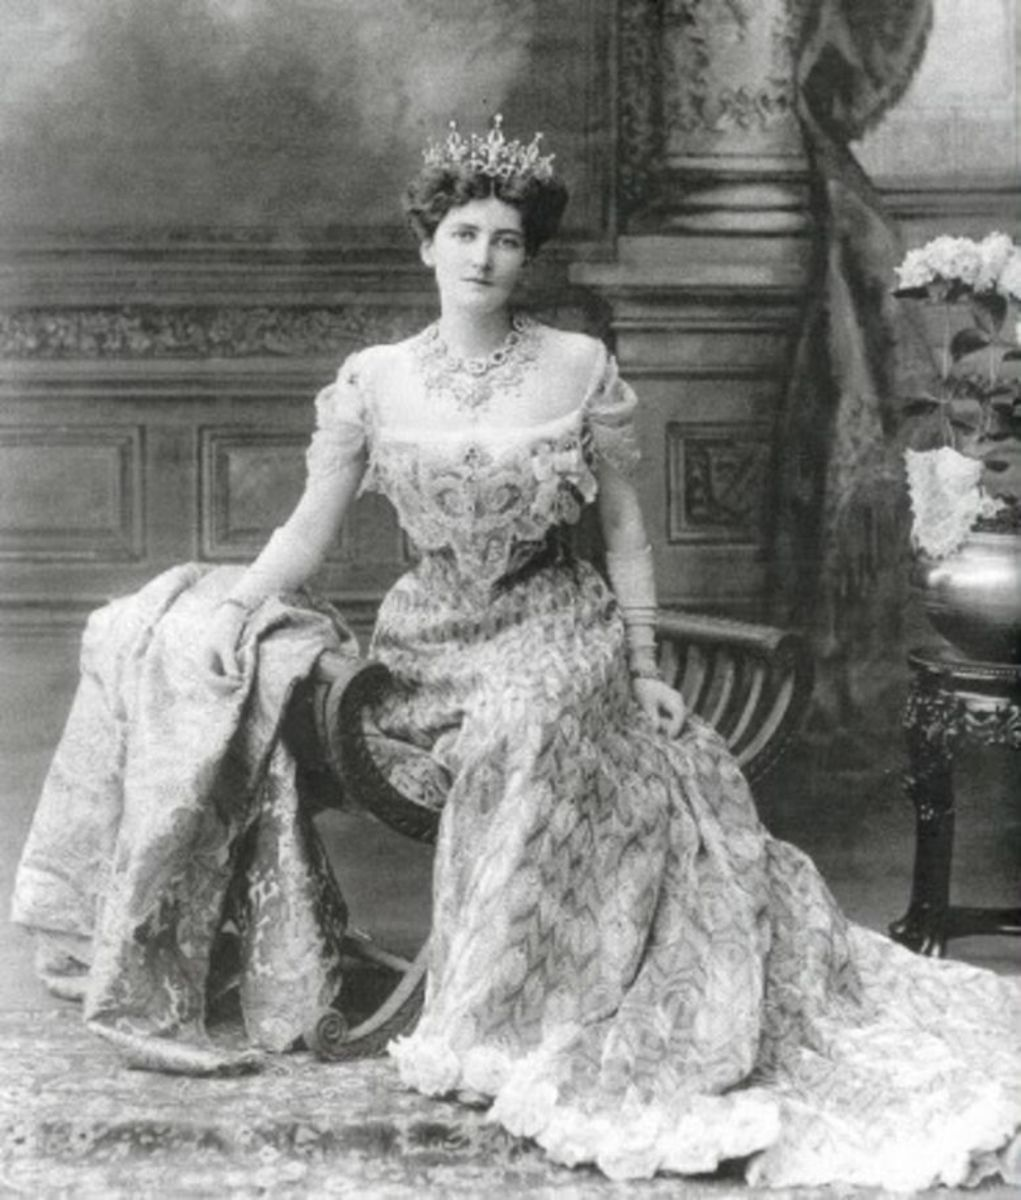 Lady Curzon wearing the peacock dress created for her in 1903 for the Indian Durbar.